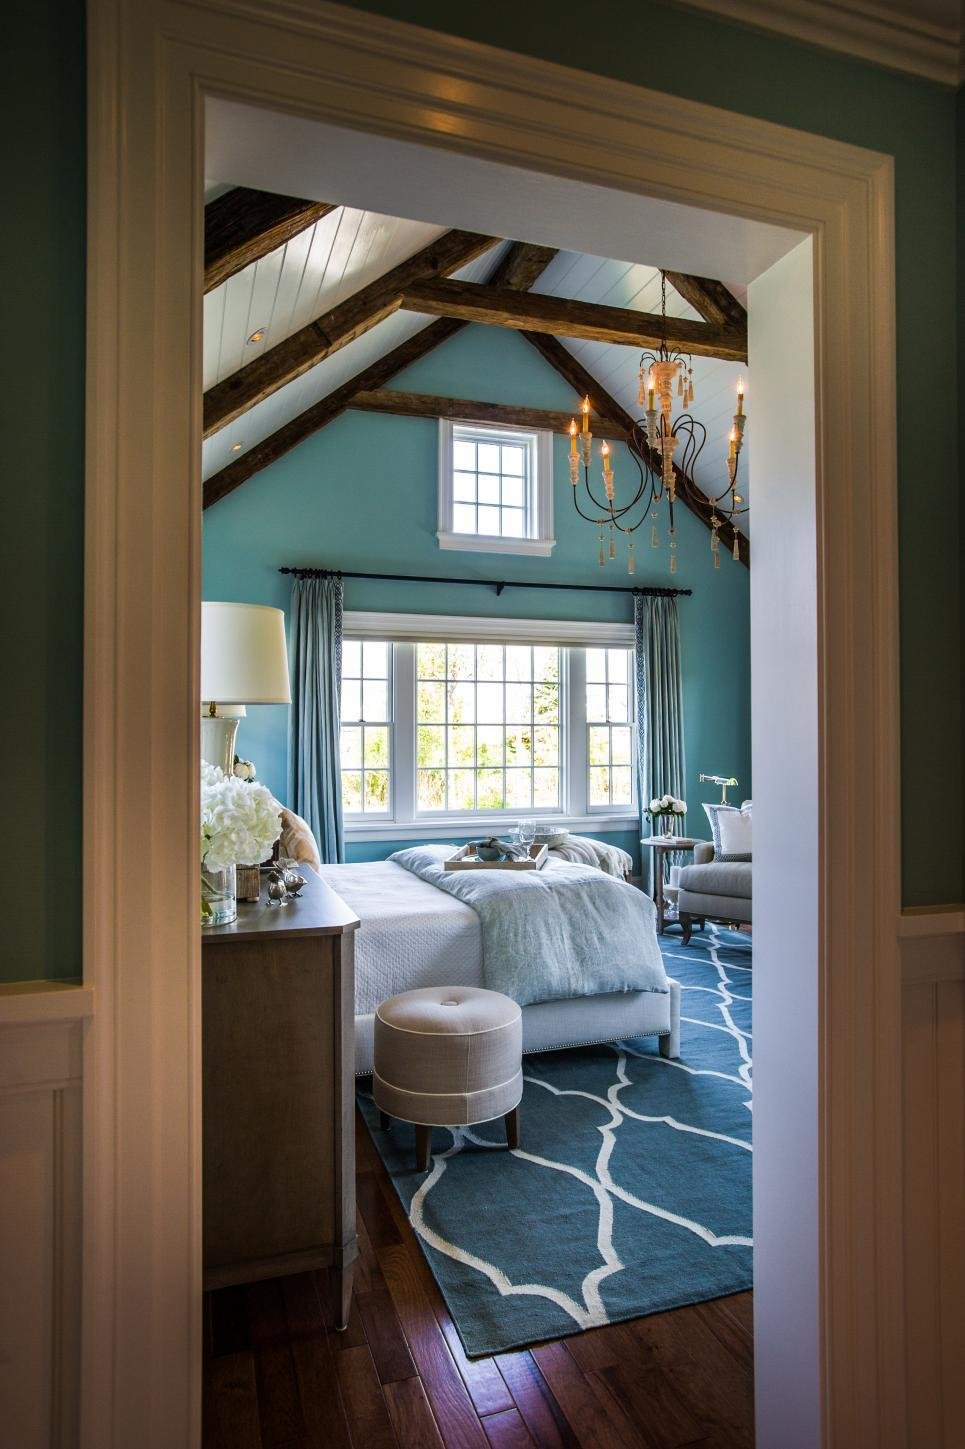 Best Hgtv Dream Home 2015 Artistic View Hgtv Dream Home 2015 With Pictures